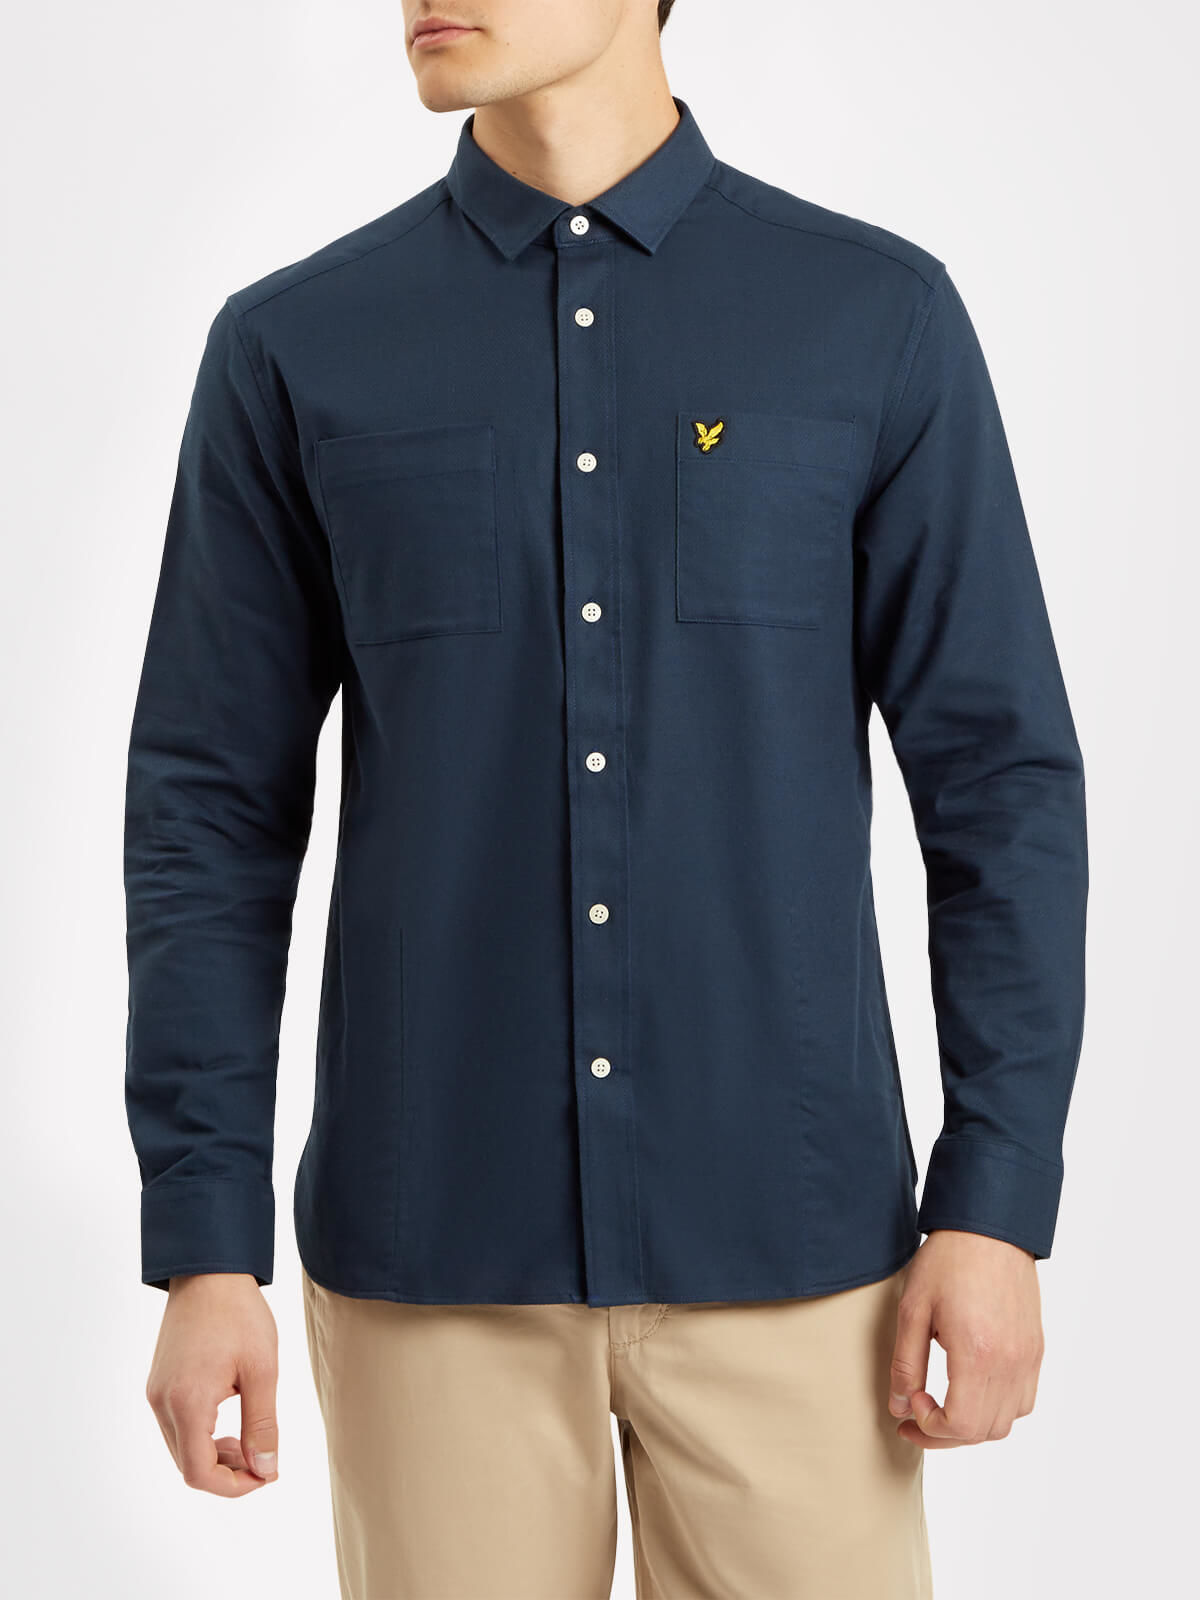 Lyle and Scott Navy Houndstooth Flannel Overshirt